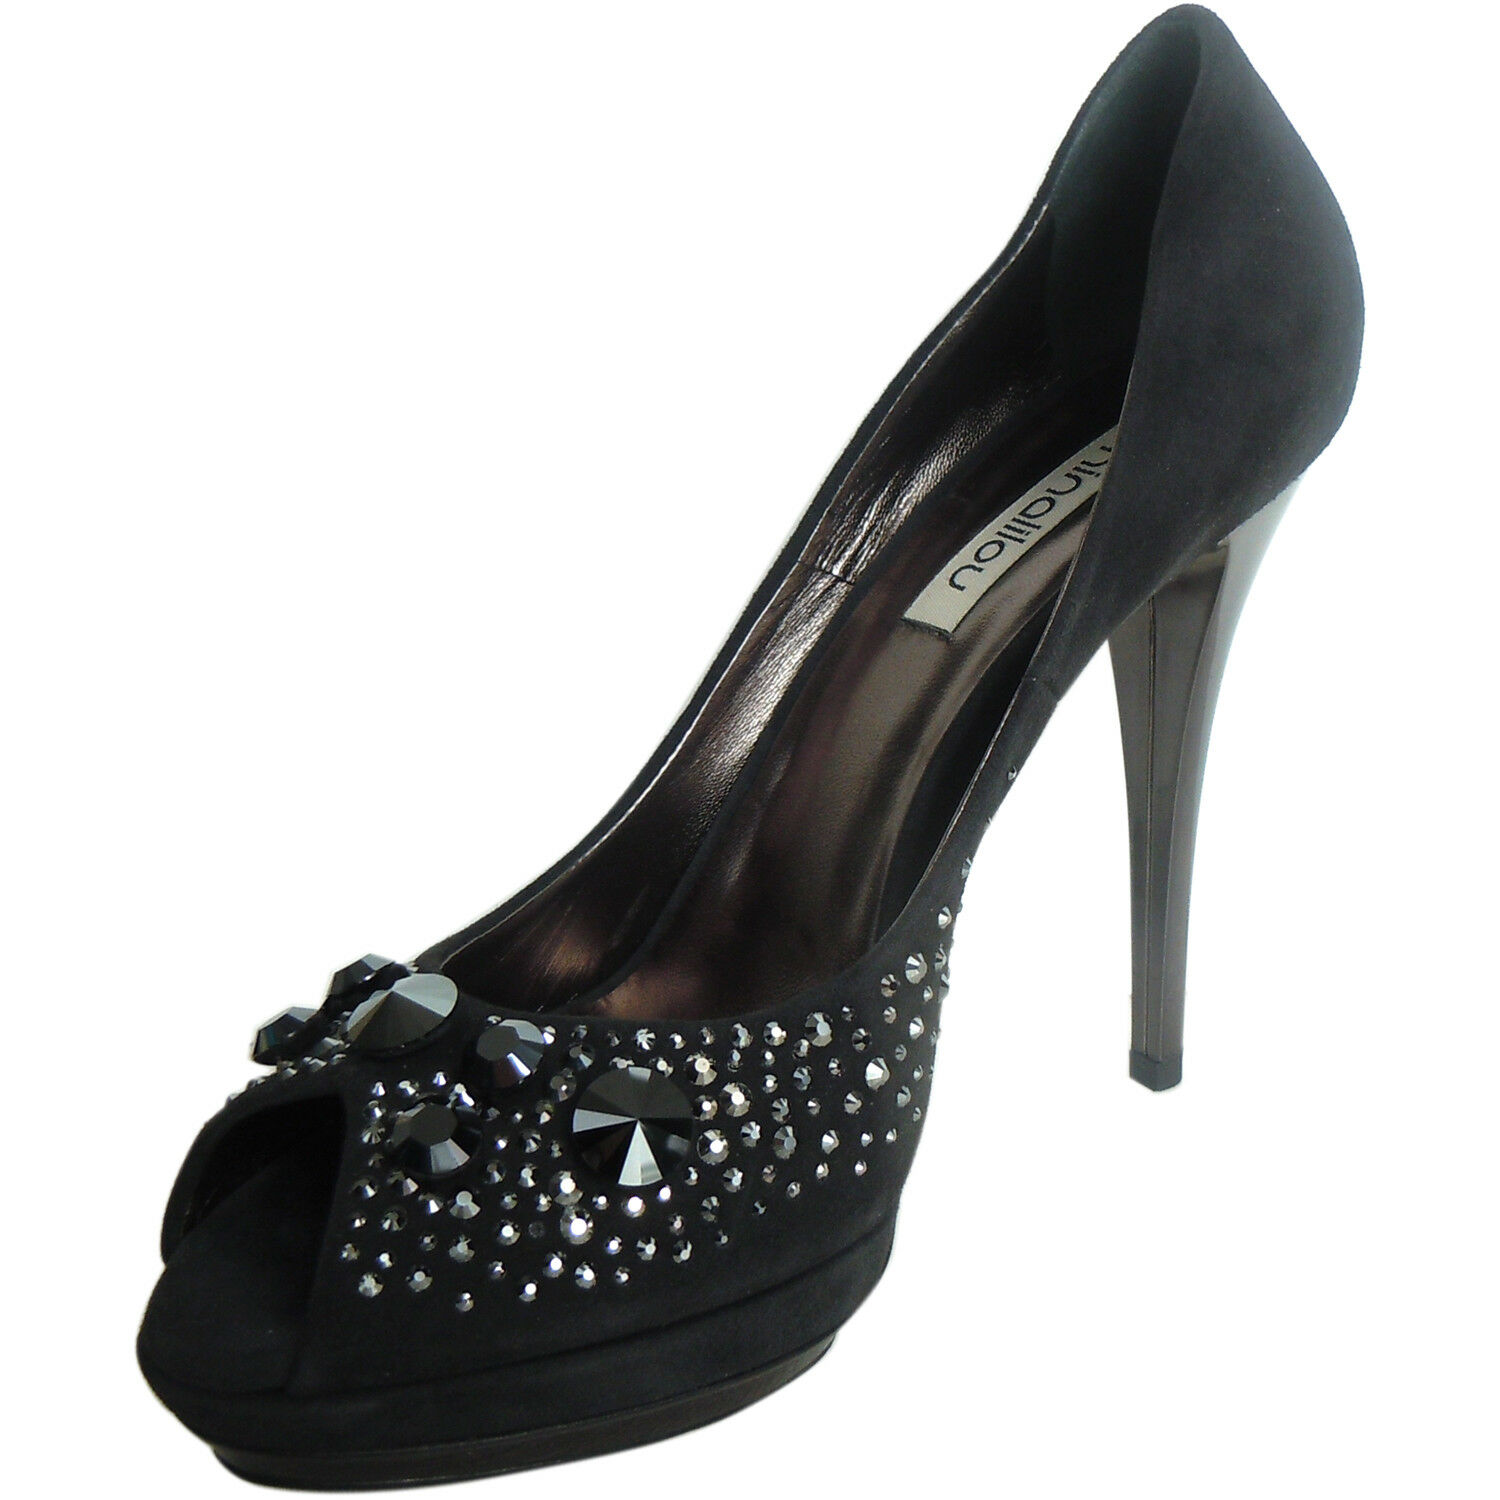 NINALILOU Made schwarz in  fashion peep toe schwarz Made suede pumps stiletto heels 190 bc84ff